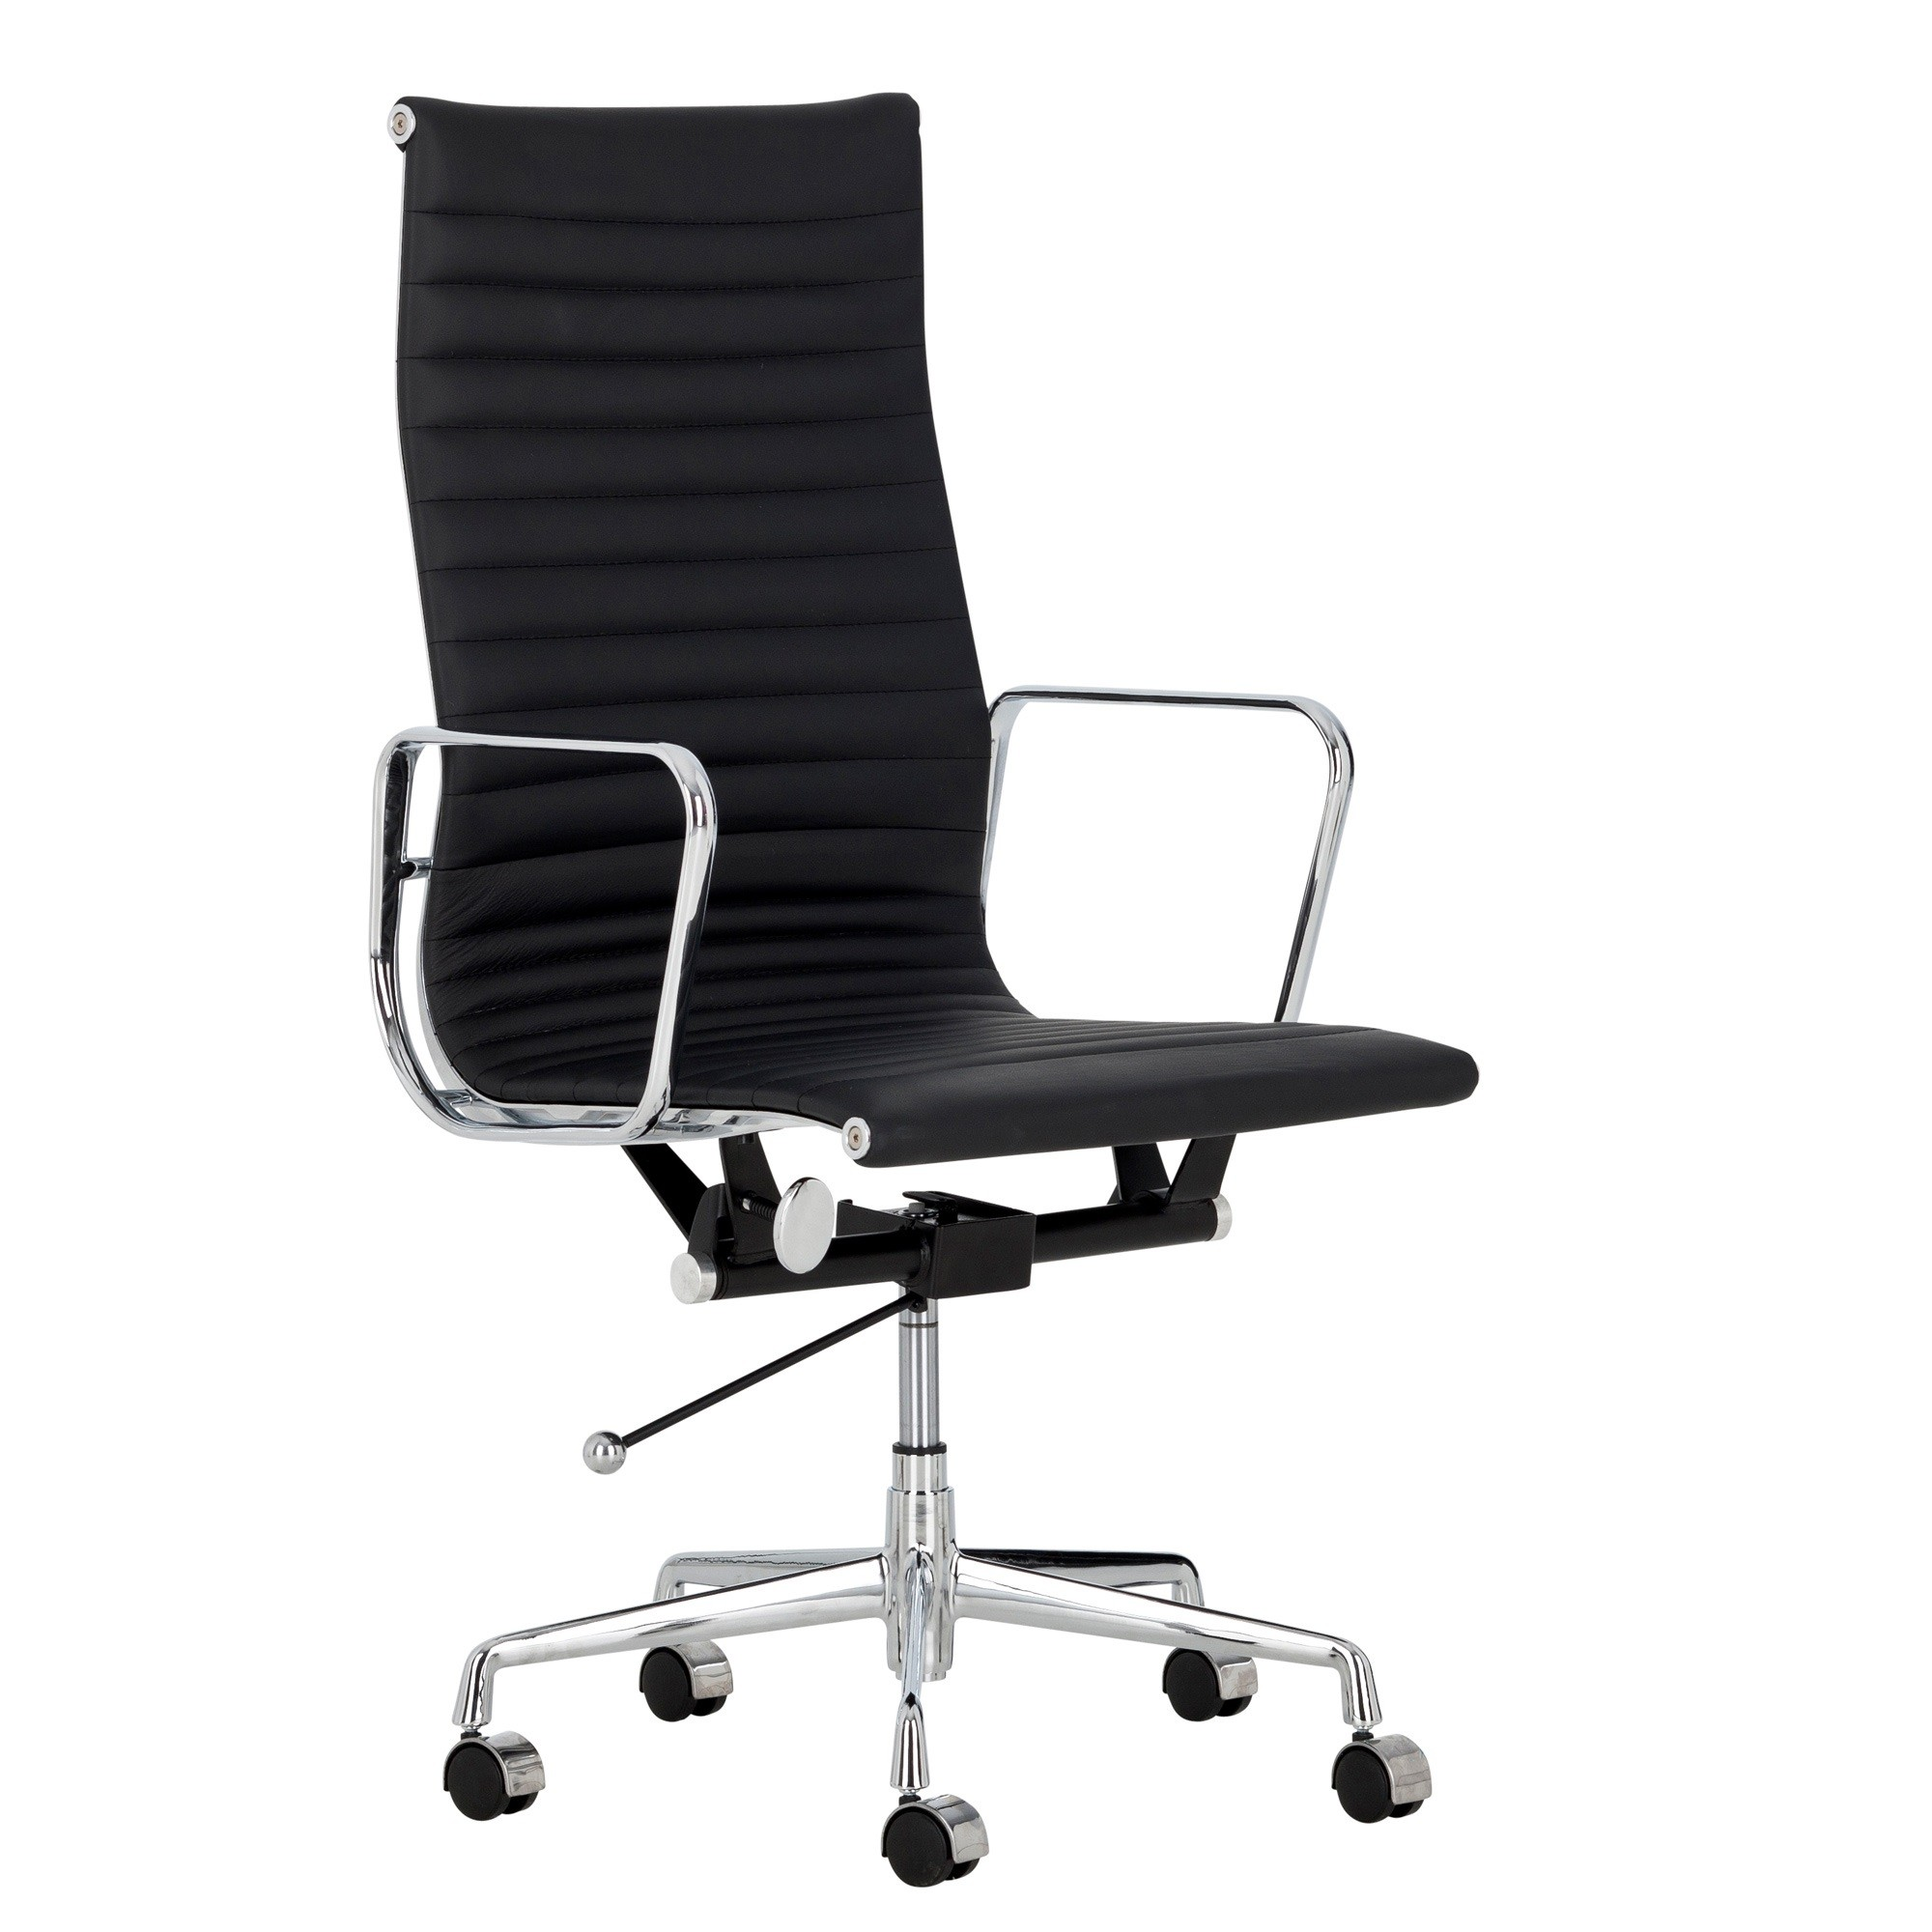 Eames Replica Eames Replica Leather High Back Management Office Chair